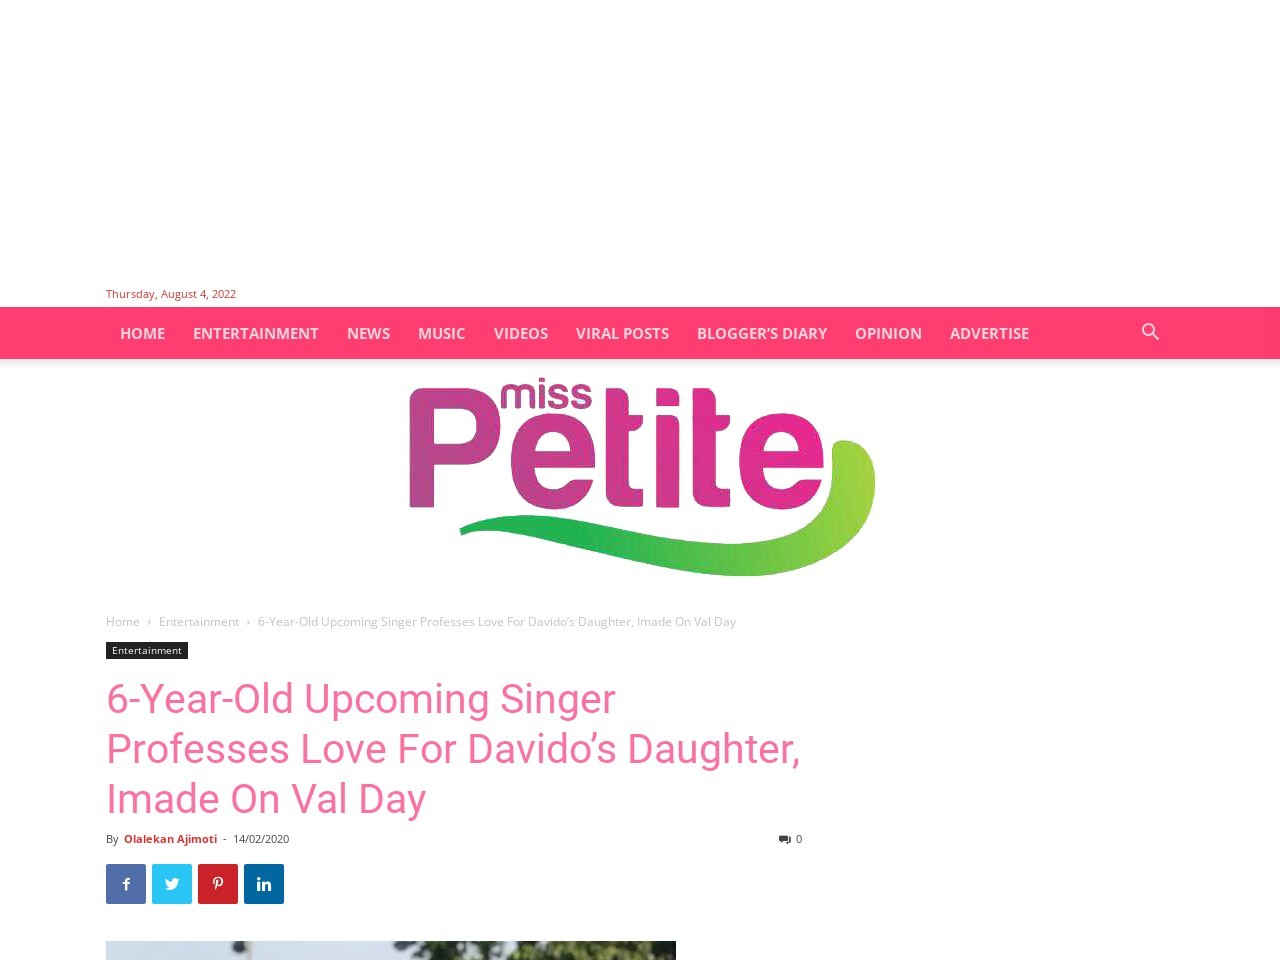 6-Year-Old Upcoming Singer Professes Love For Davido's Daughter, Imade On Val Day